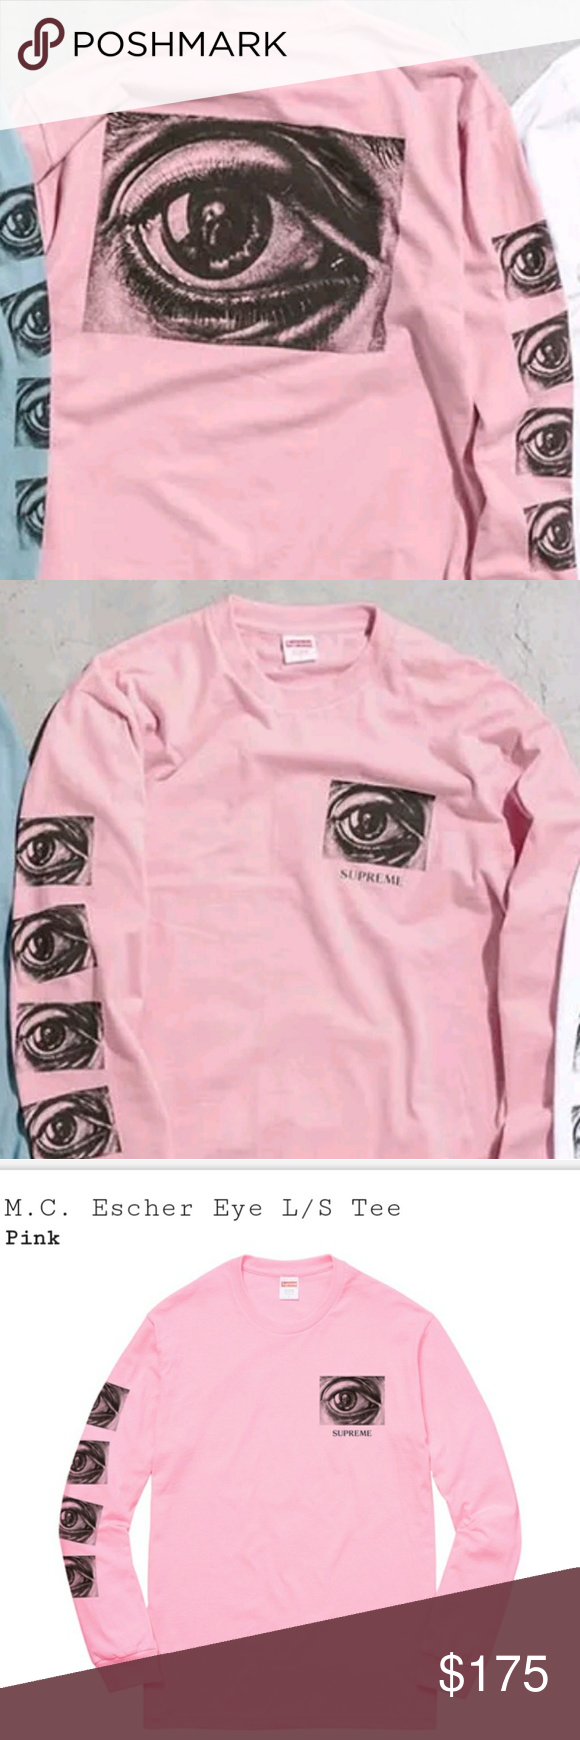 9beb839d2acc Supreme M. C. Escher Eye Long sleeve tshirt Brand new sealed In bag with 1  sticker and copy of receipt. Will bundle More listings going up XL Light  pink ...